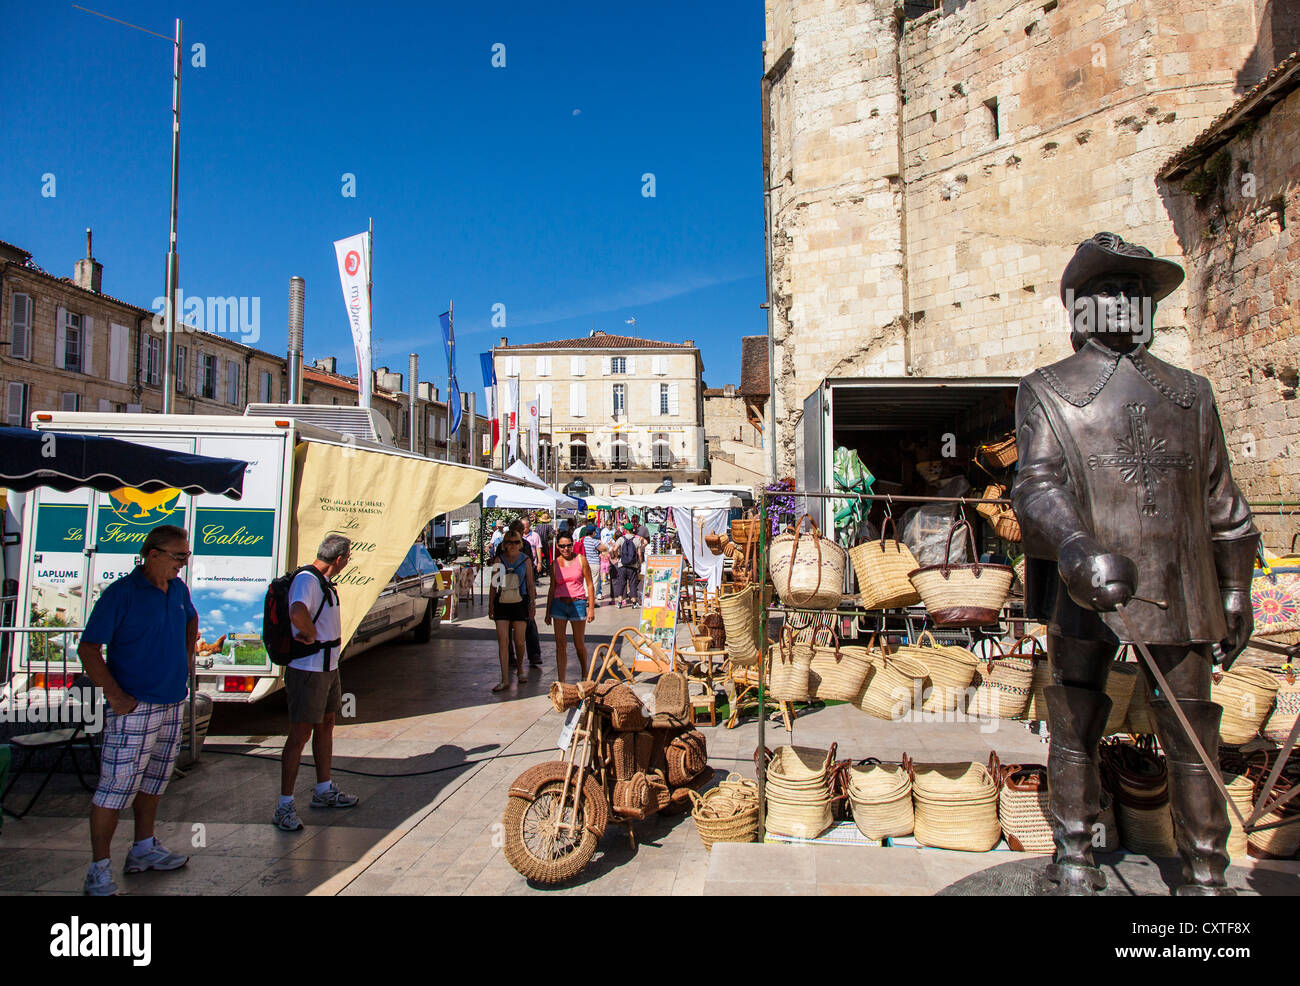 market day with stalls and people in Condom, Gers, Gascony, France - Stock Image